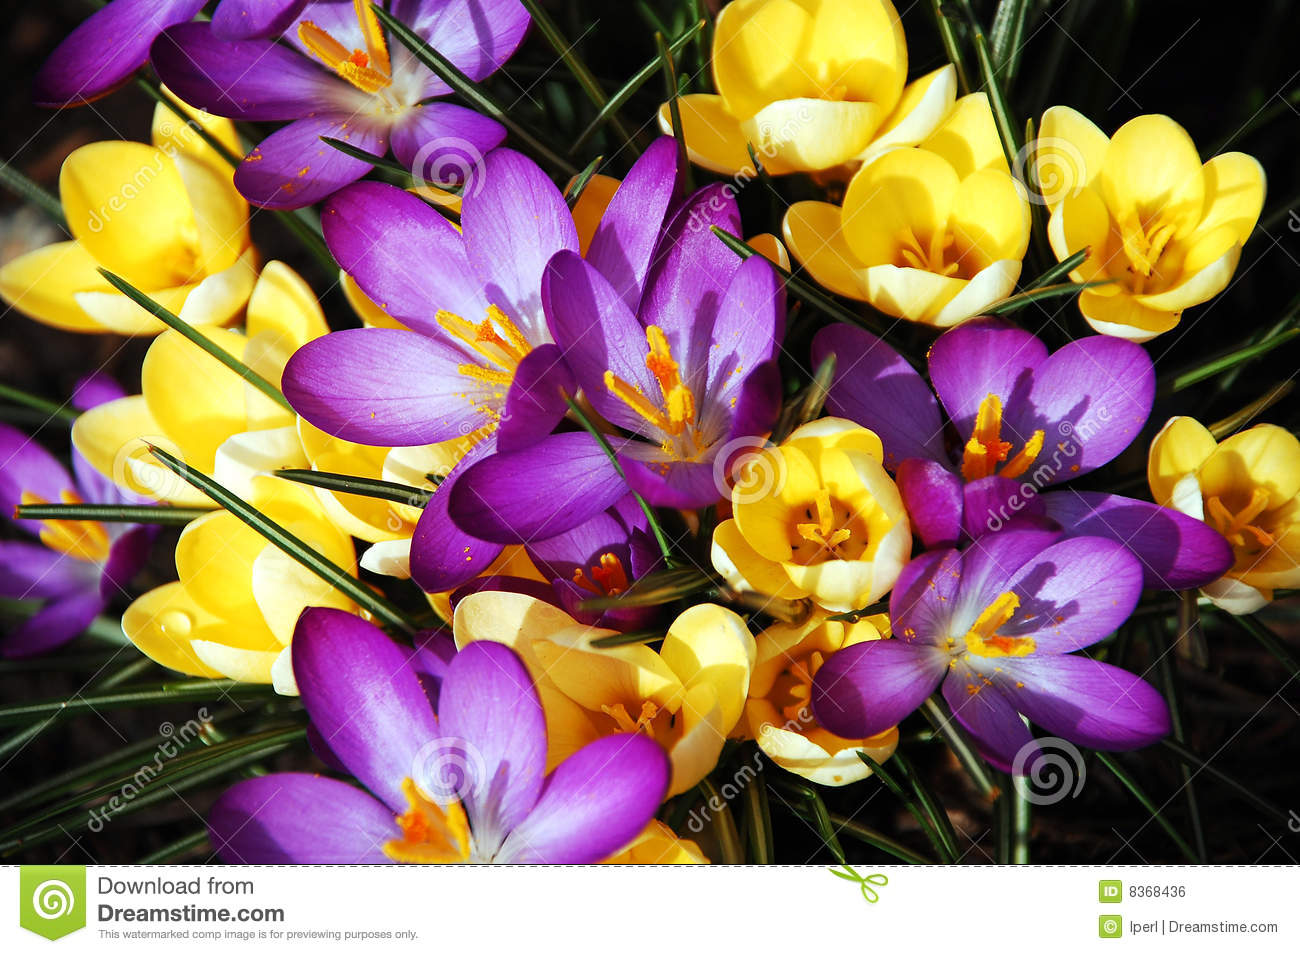 Purple and yellow spring crocus flowers stock photo image of purple and yellow spring crocus flowers mightylinksfo